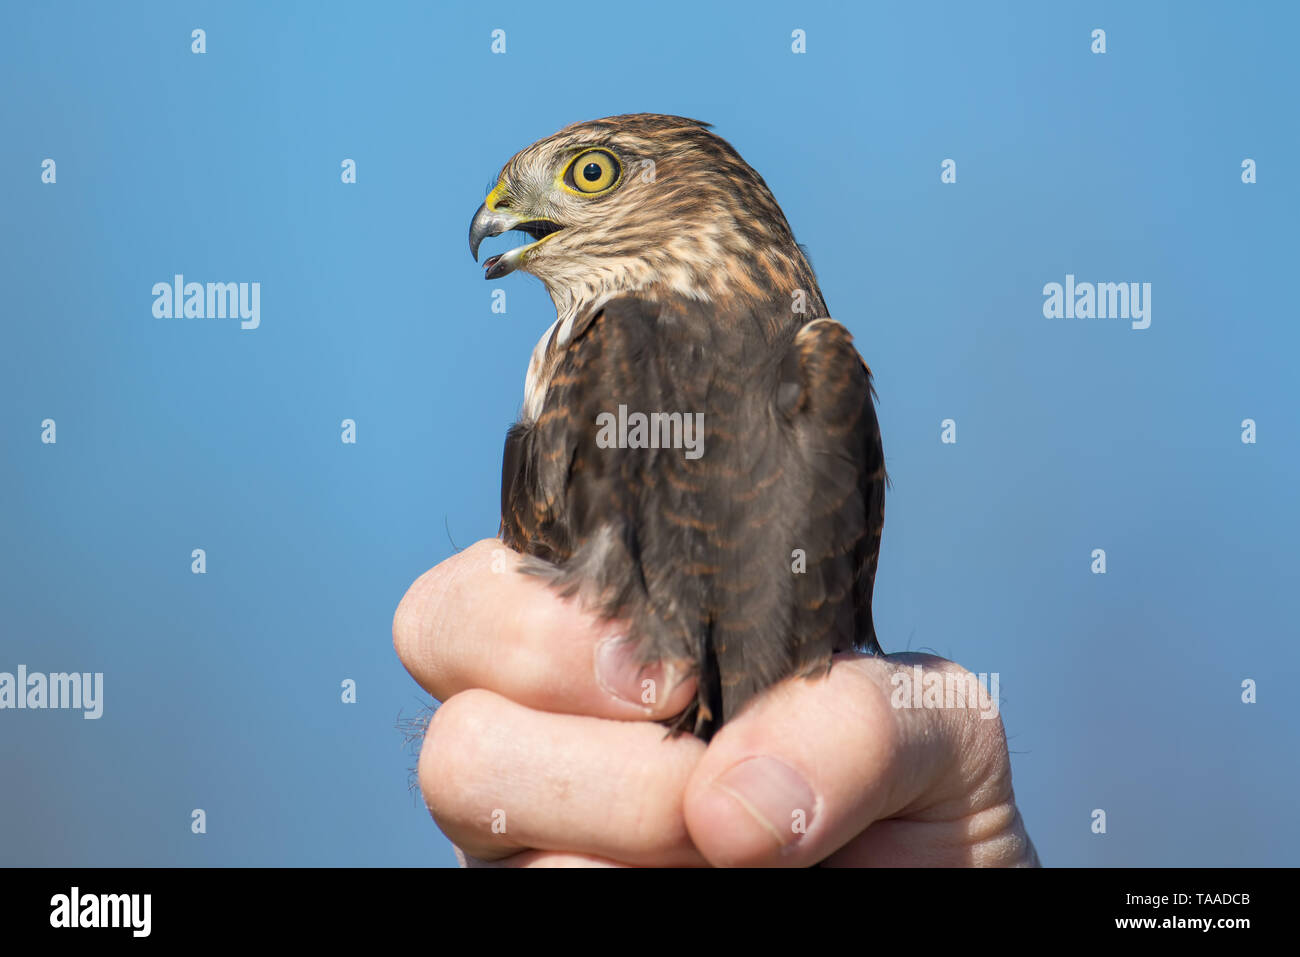 I believe a sharp-shinned juvenile hawk portrait - close up - at Hawk Ridge Bird Observatory in Duluth, Minnesota during Fall migrations - Stock Image